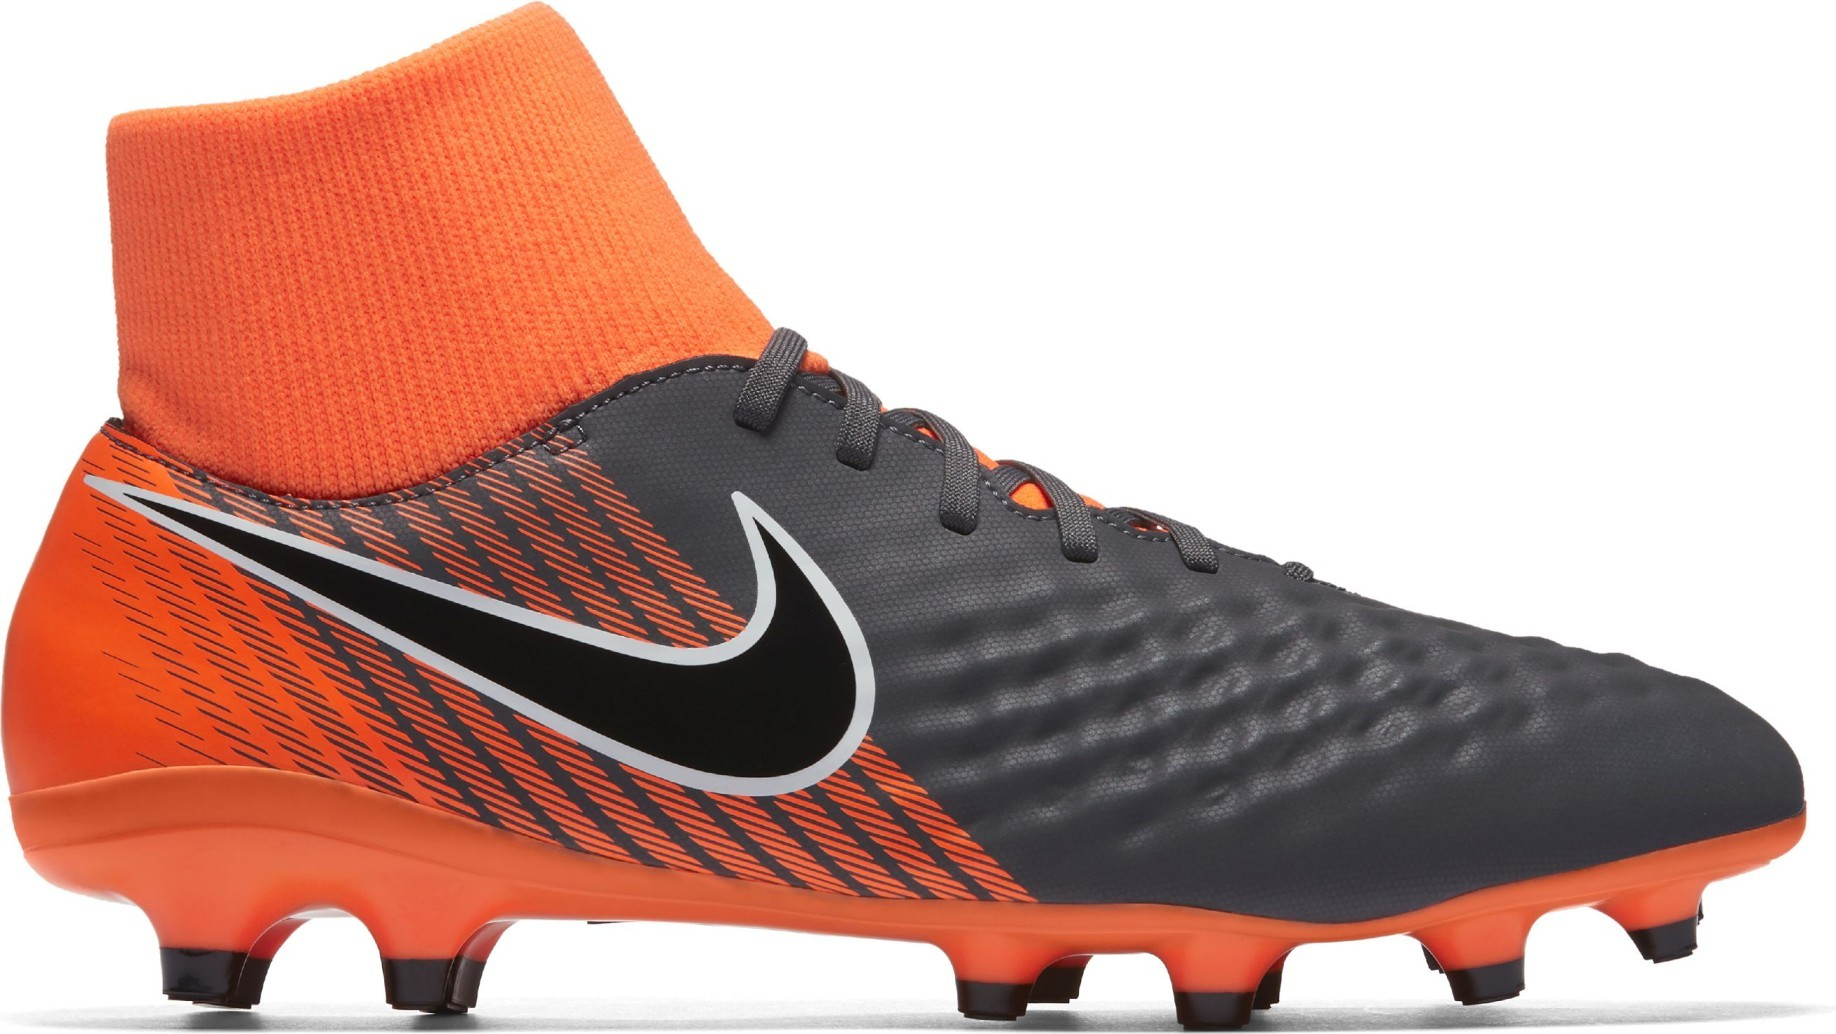 online store 65a47 469d0 Football boots Nike Magista Obra II Academy DF FG Fast AF Pack colore Grey  Orange - Nike - SportIT.com